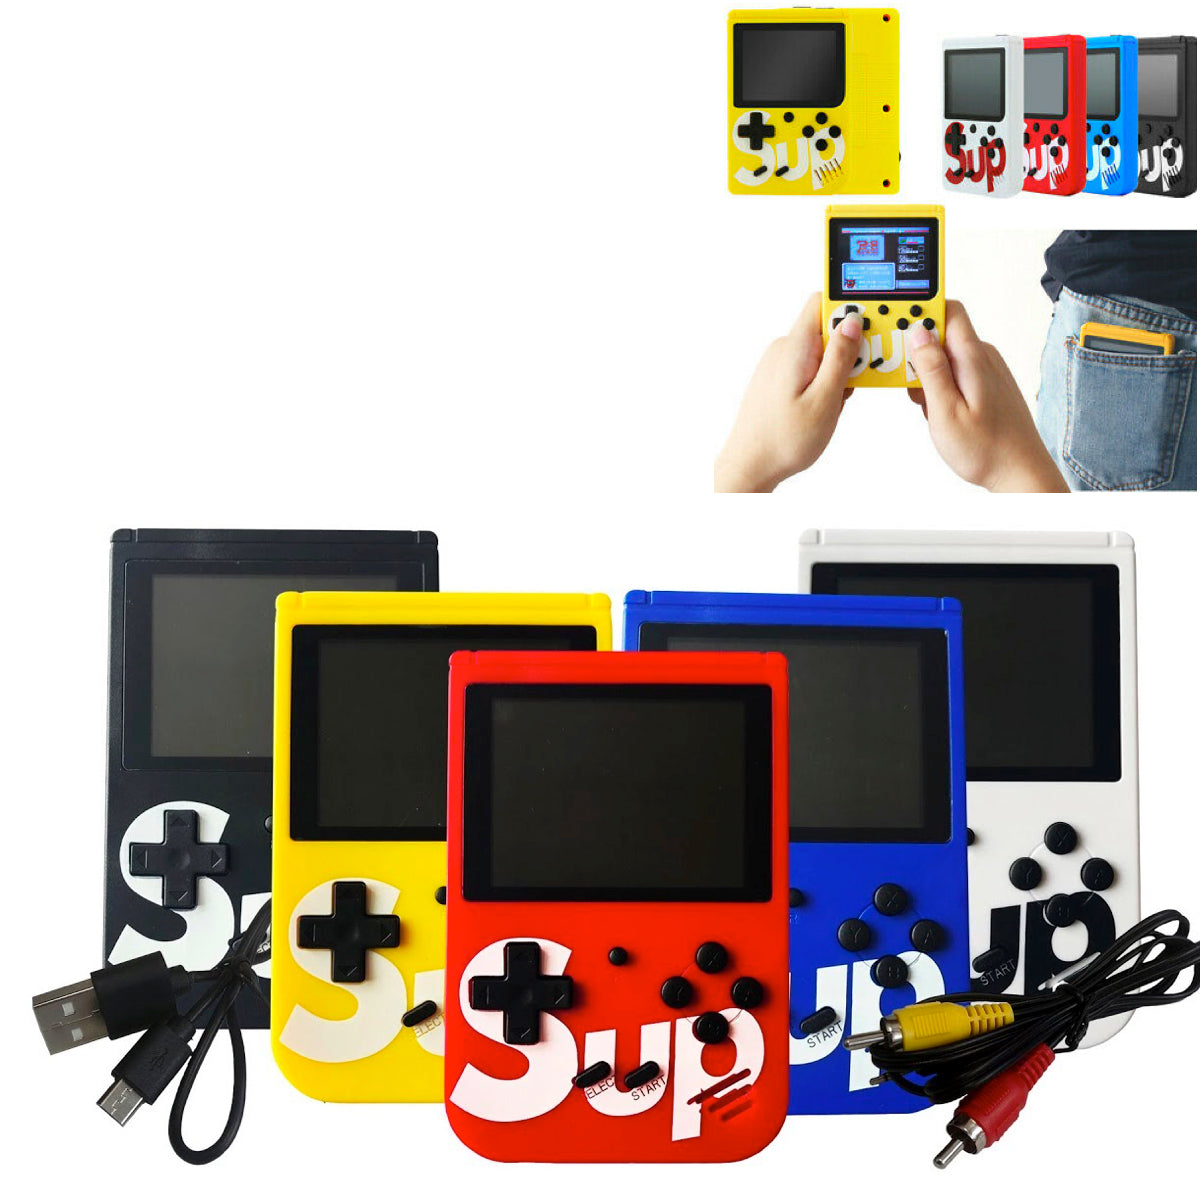 Mini TV Handheld Video Game Box Console Retro NES 2019 PXP3